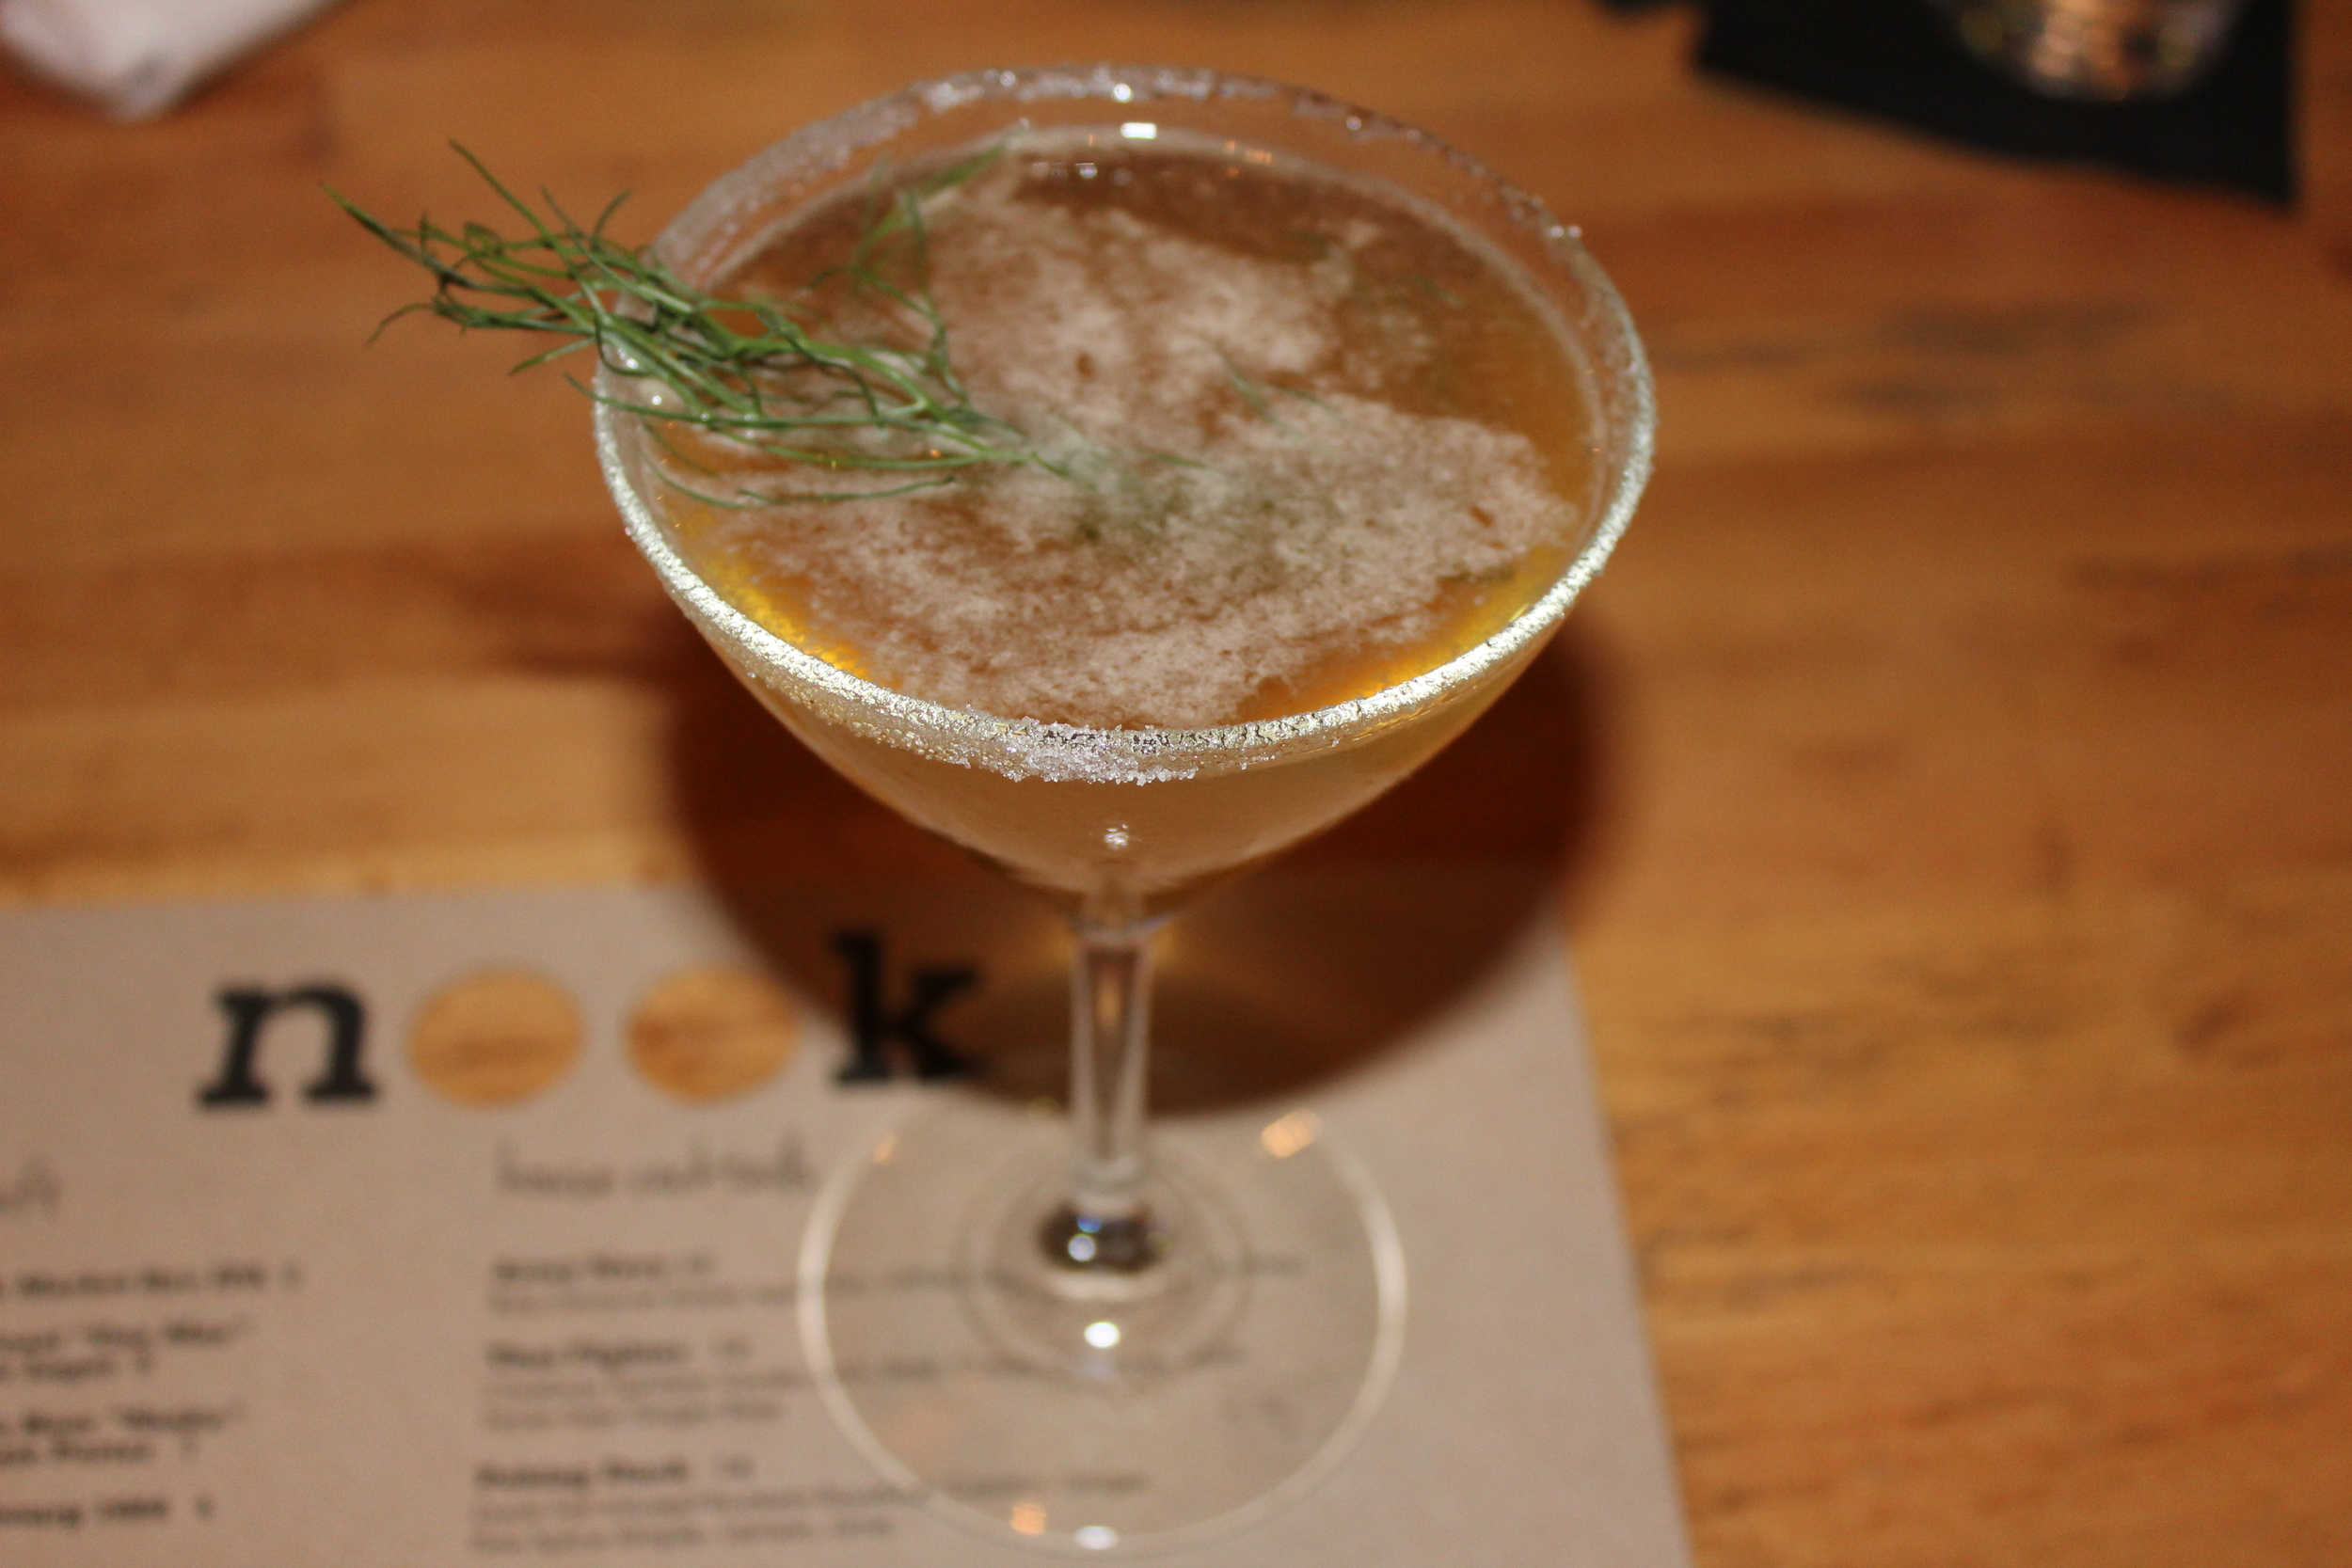 Seasonal Sidecar (H by Hine cognac, Yellow Chartreuse, carrot simple syrup, and lemon)